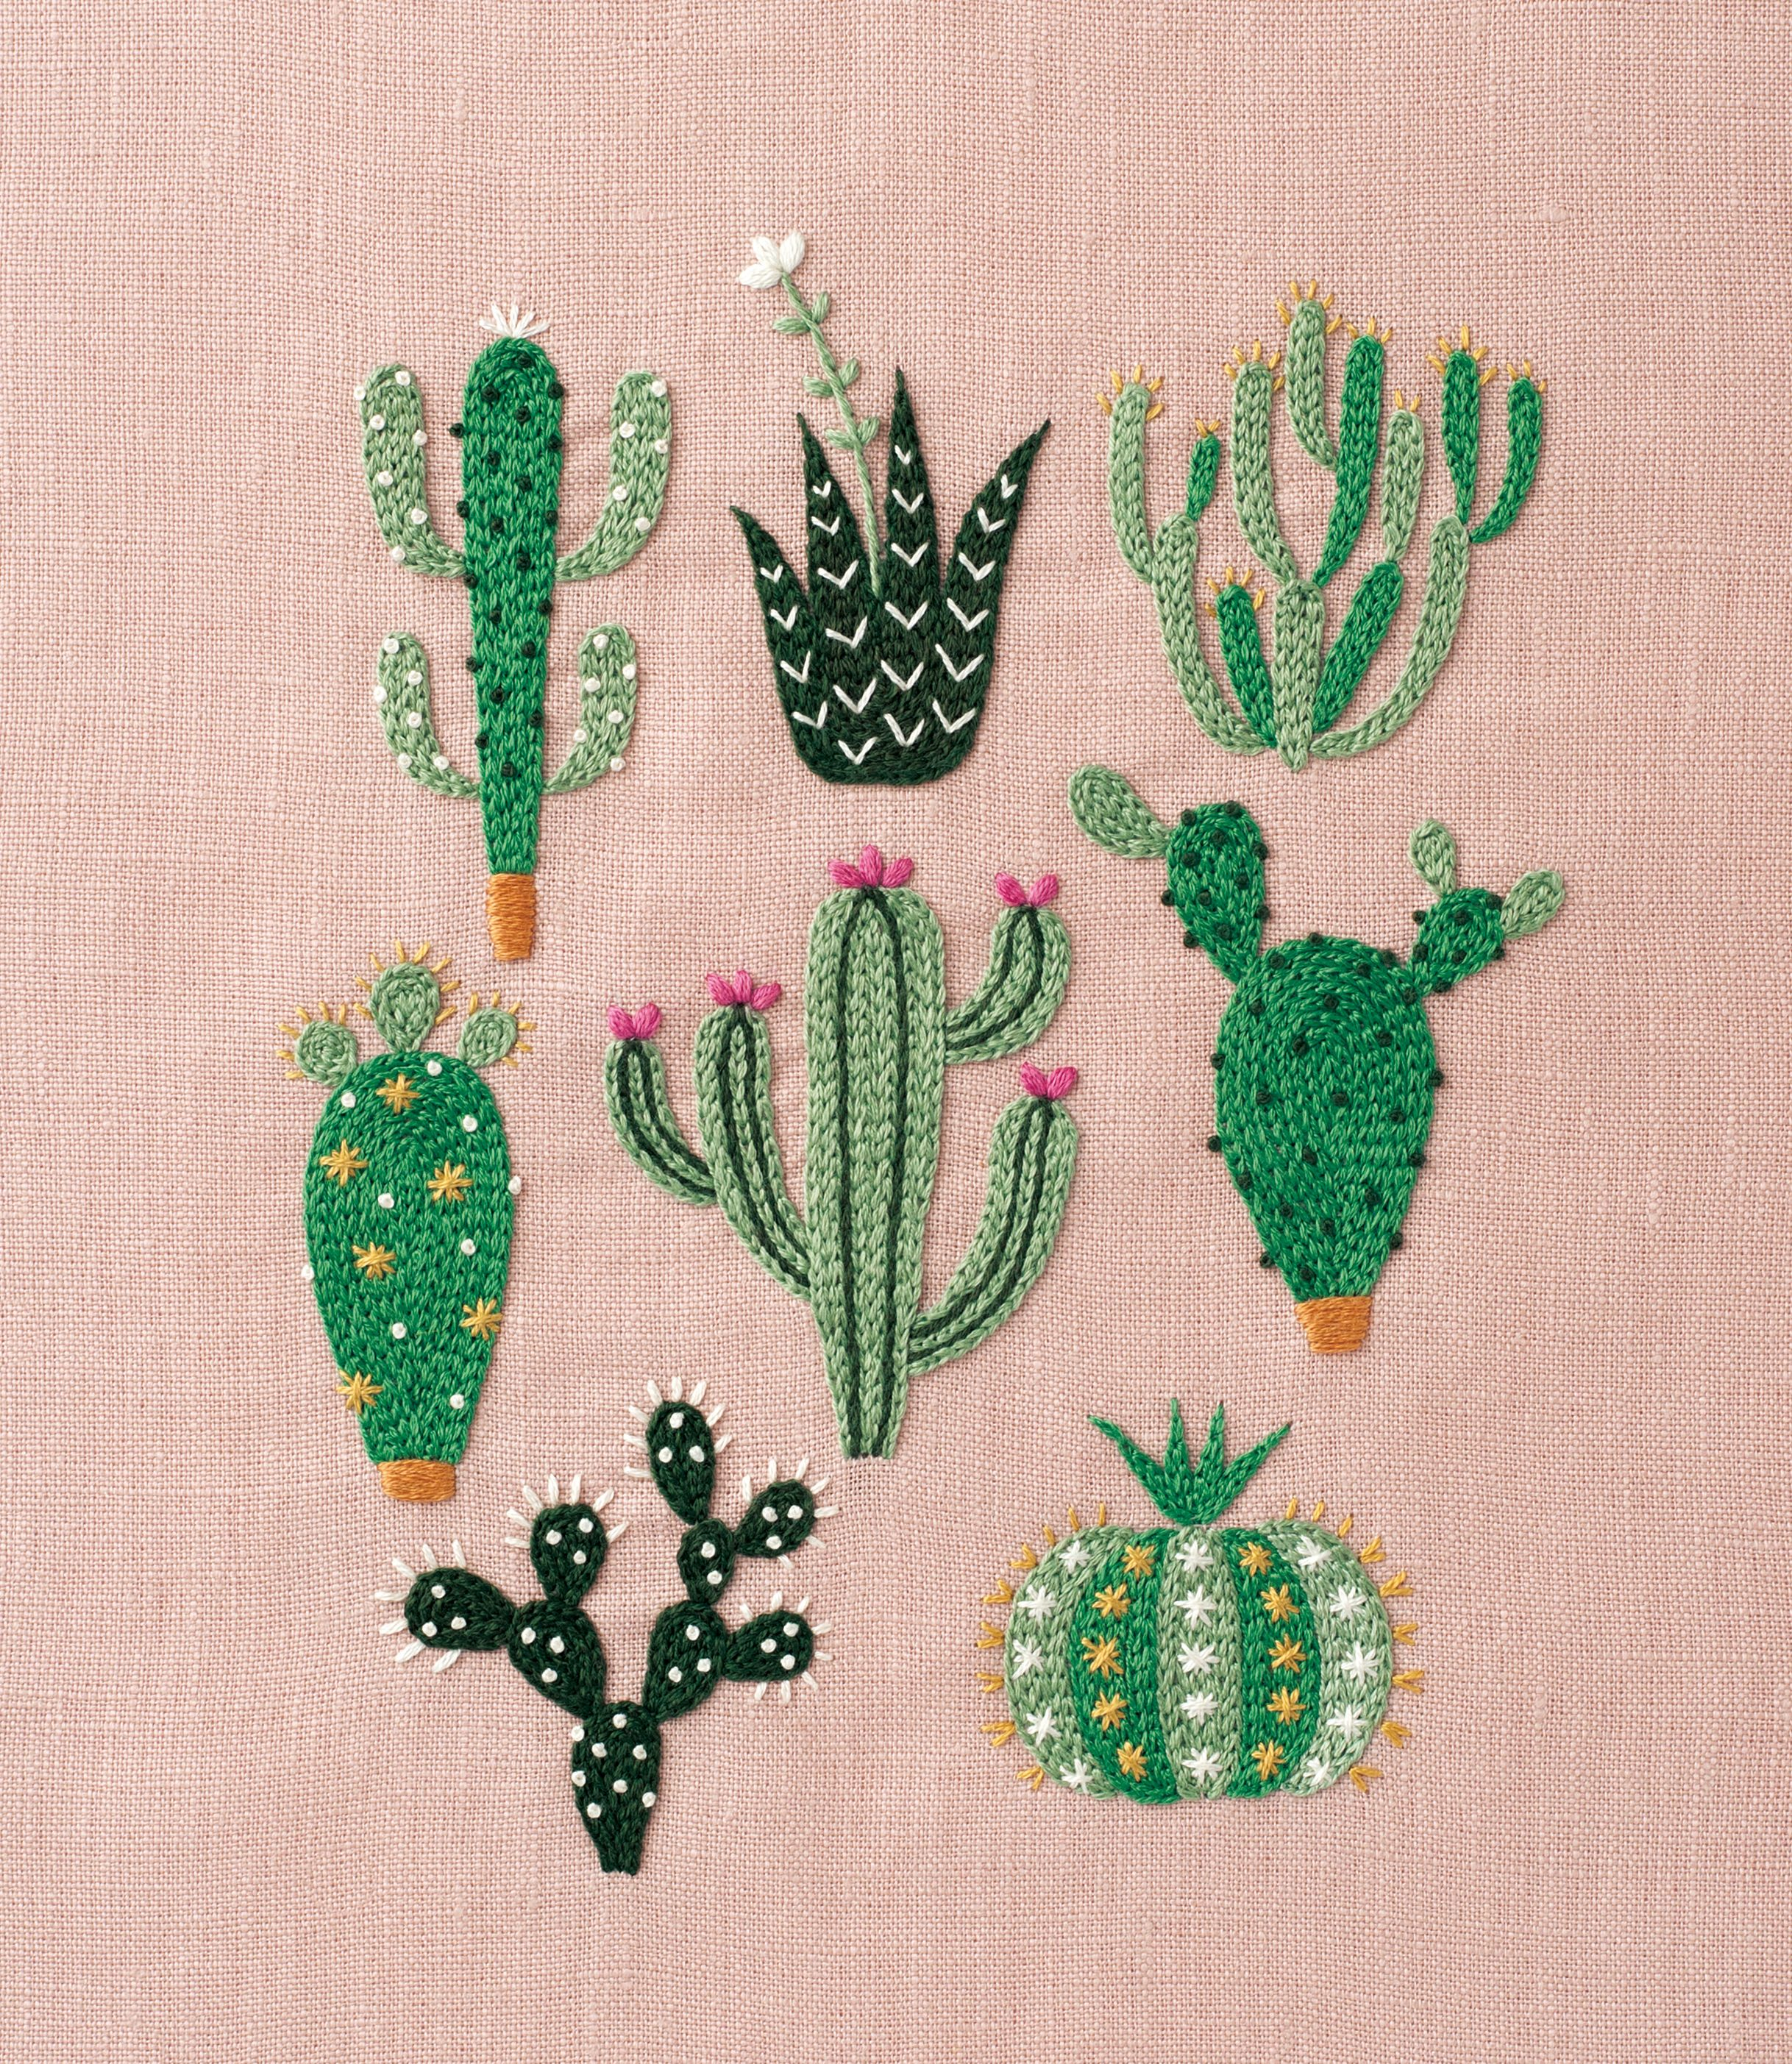 DIY Floral & Cactus Embroidery Projects From A Year Of